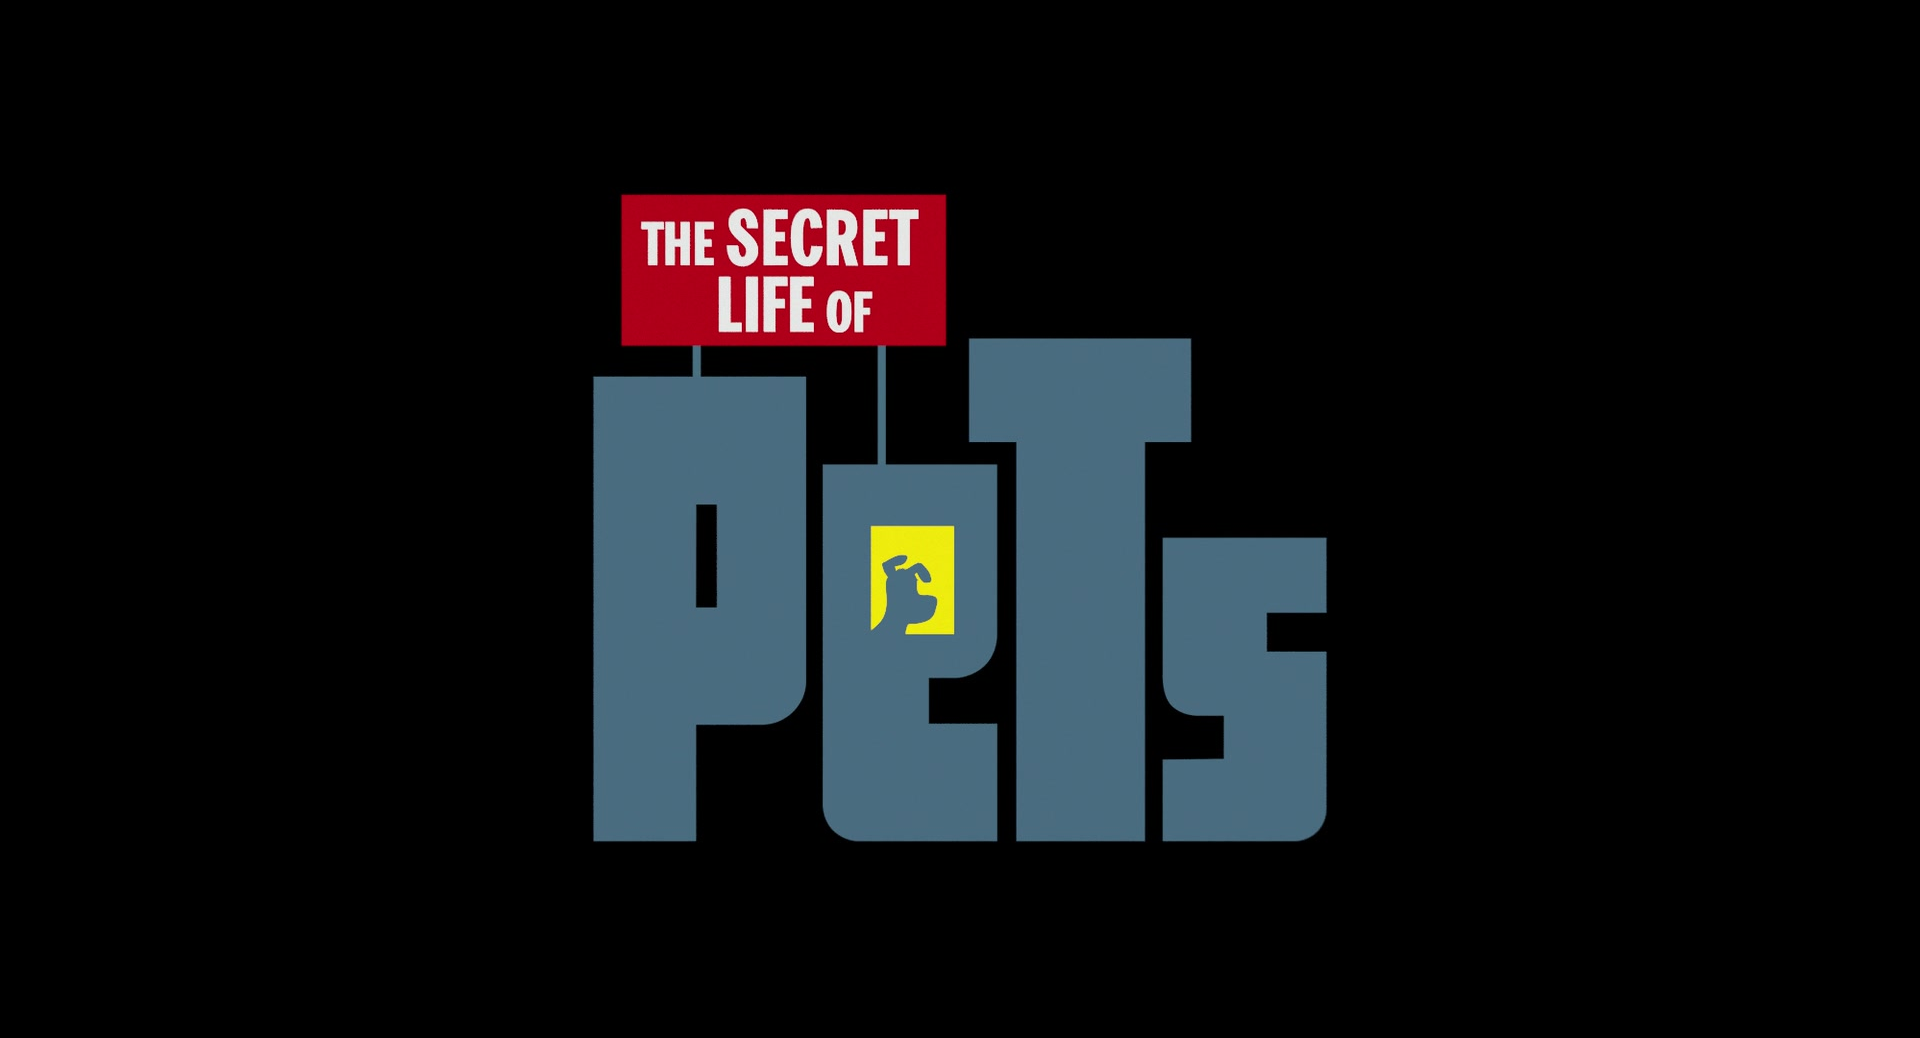 Image the secret life of pets titleg despicable me wiki the secret life of pets titleg biocorpaavc Image collections